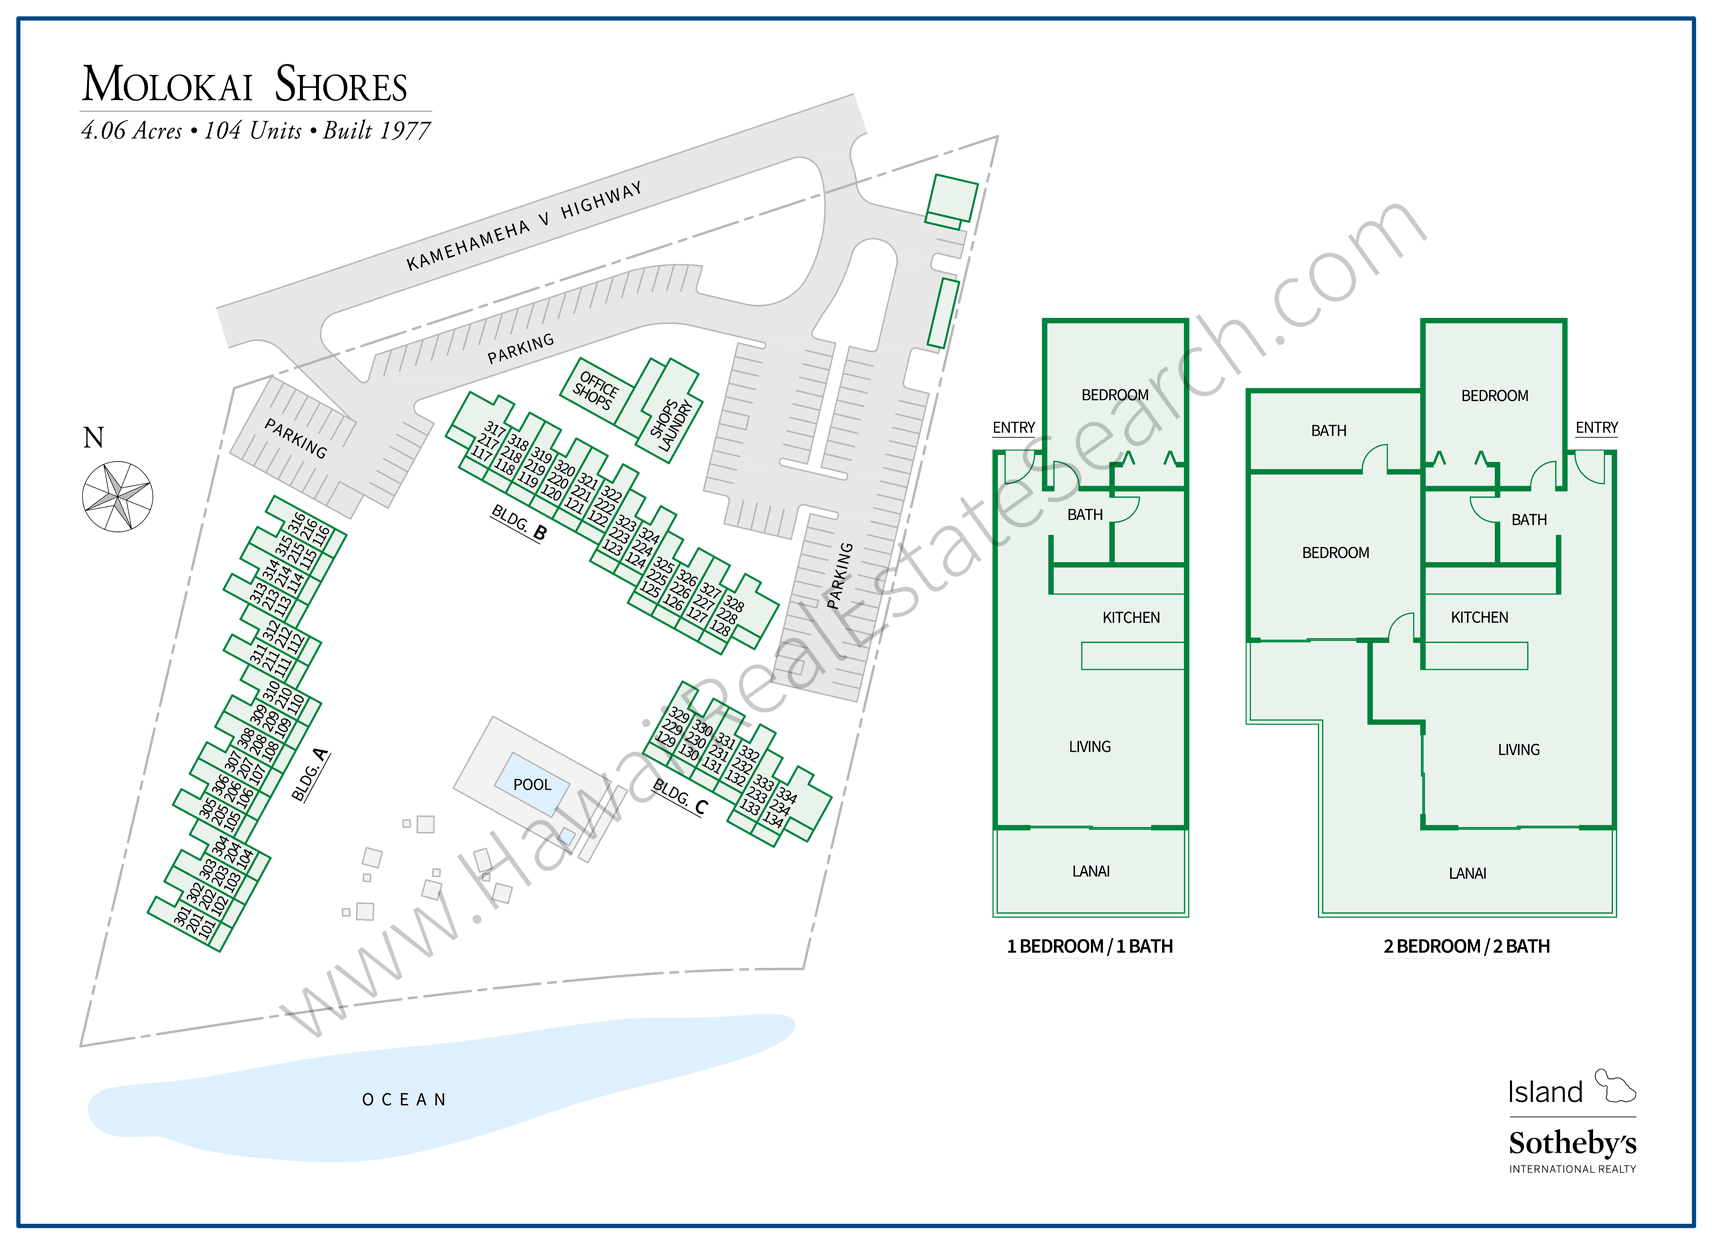 Molokai Shores Map